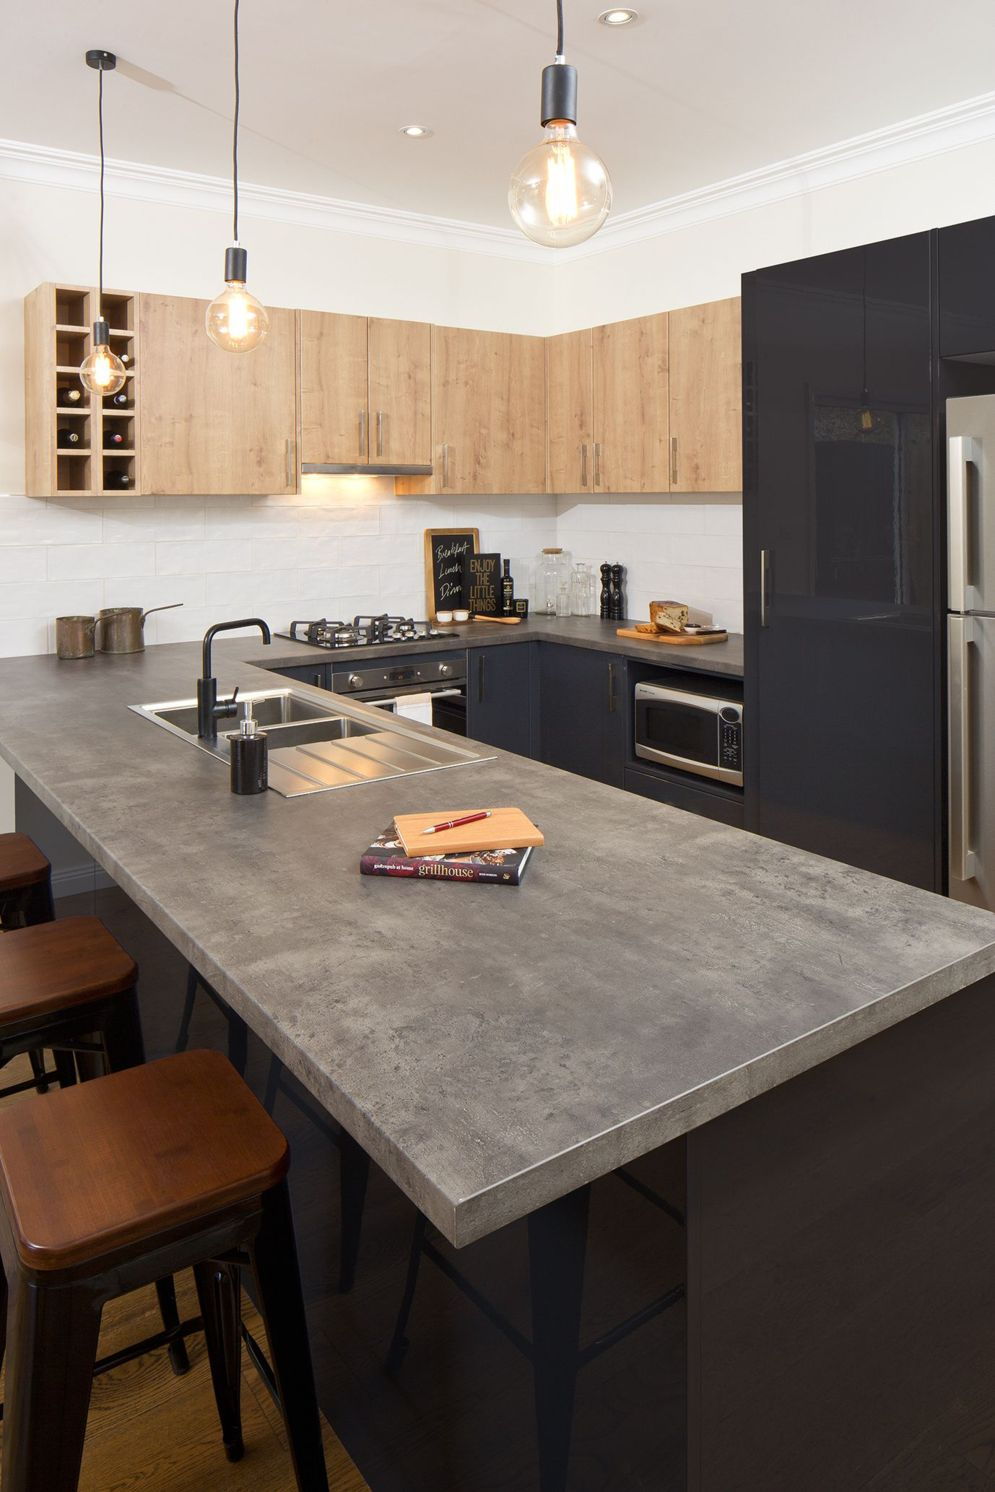 Modern kitchen updates using efficient concrete benchtops to show sturdier interior display Image 38